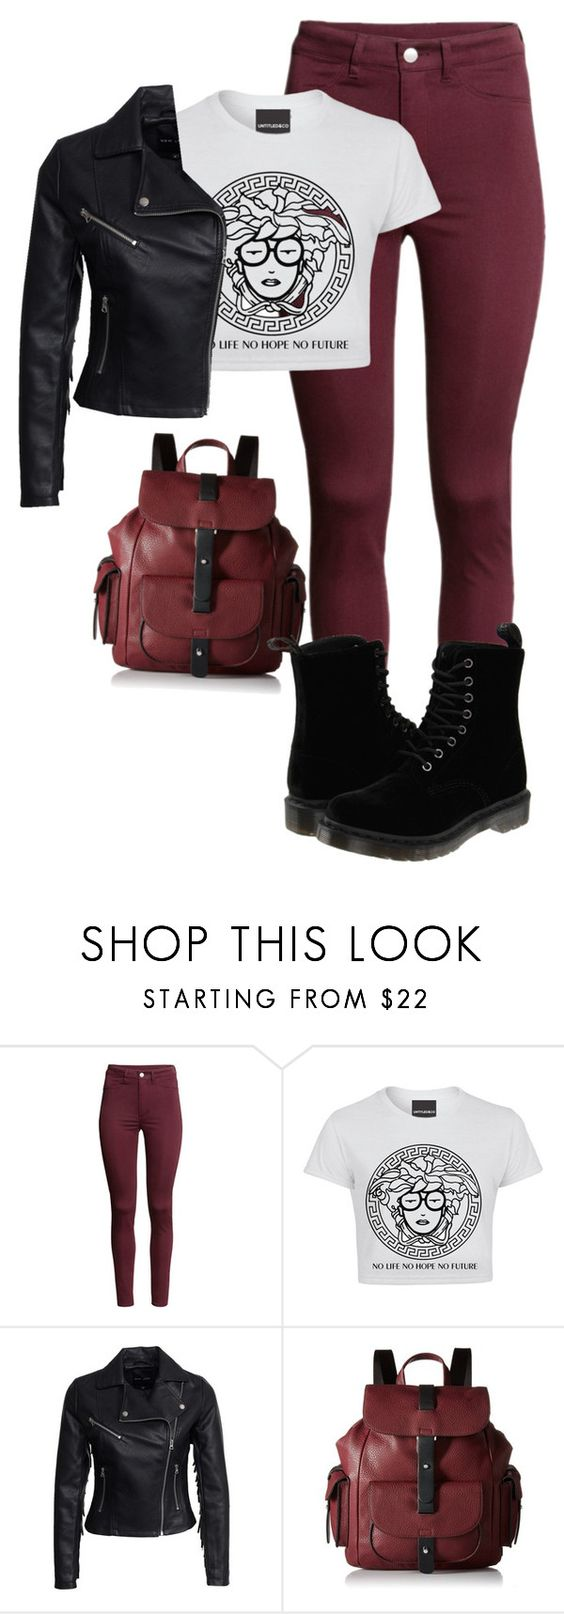 """""""Maroon"""" by kacieh ❤ liked on Polyvore featuring H&M, New Look, Kenneth Cole Reaction and Dr. Martens"""